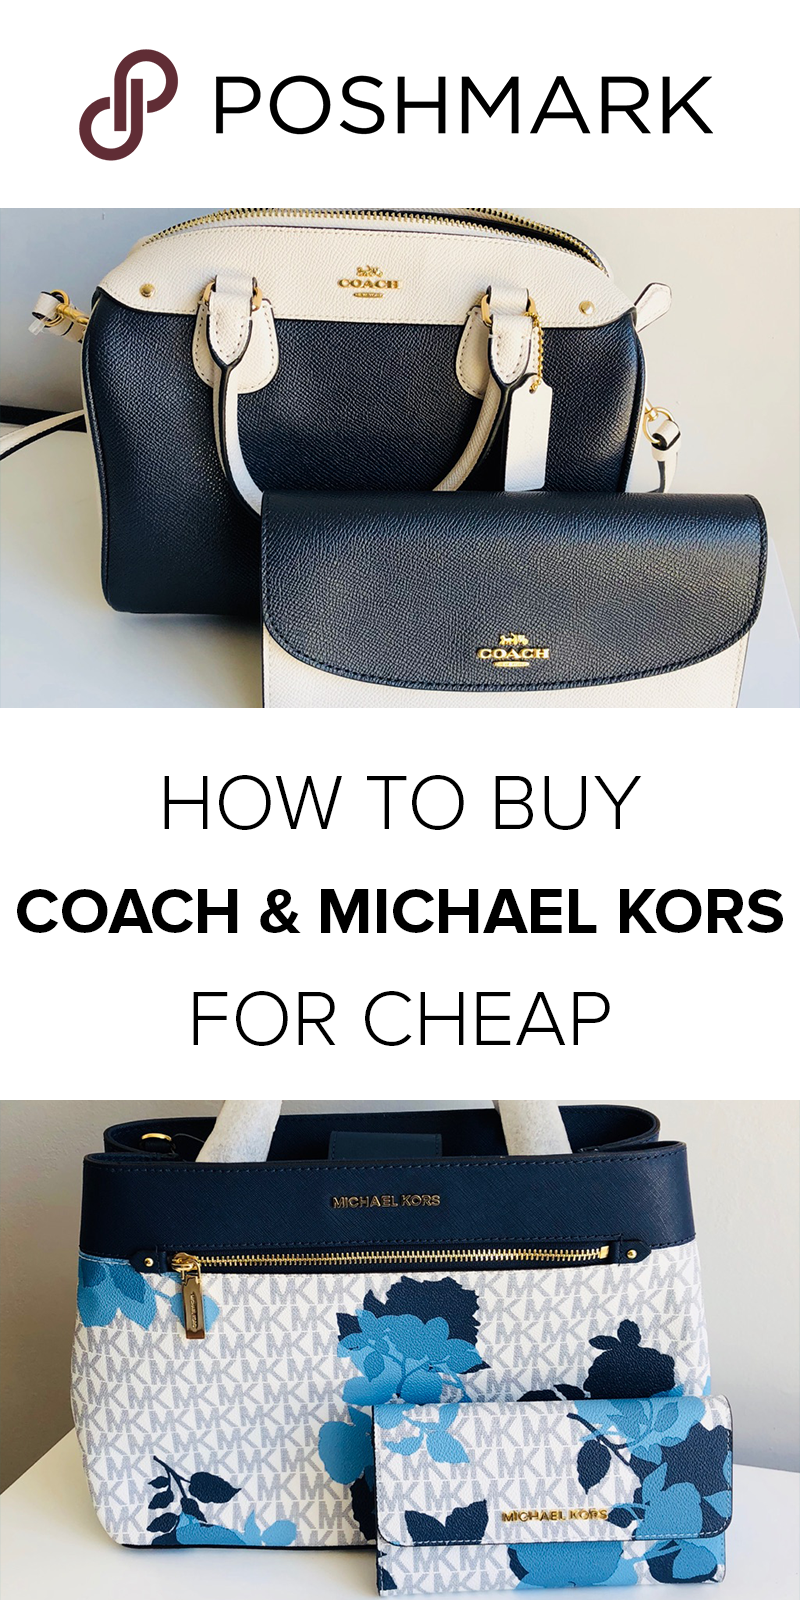 452a27925a54 Get Coach & Michael Kors designer handbags for up to 70% off on Poshmark.  Download the app to shop!